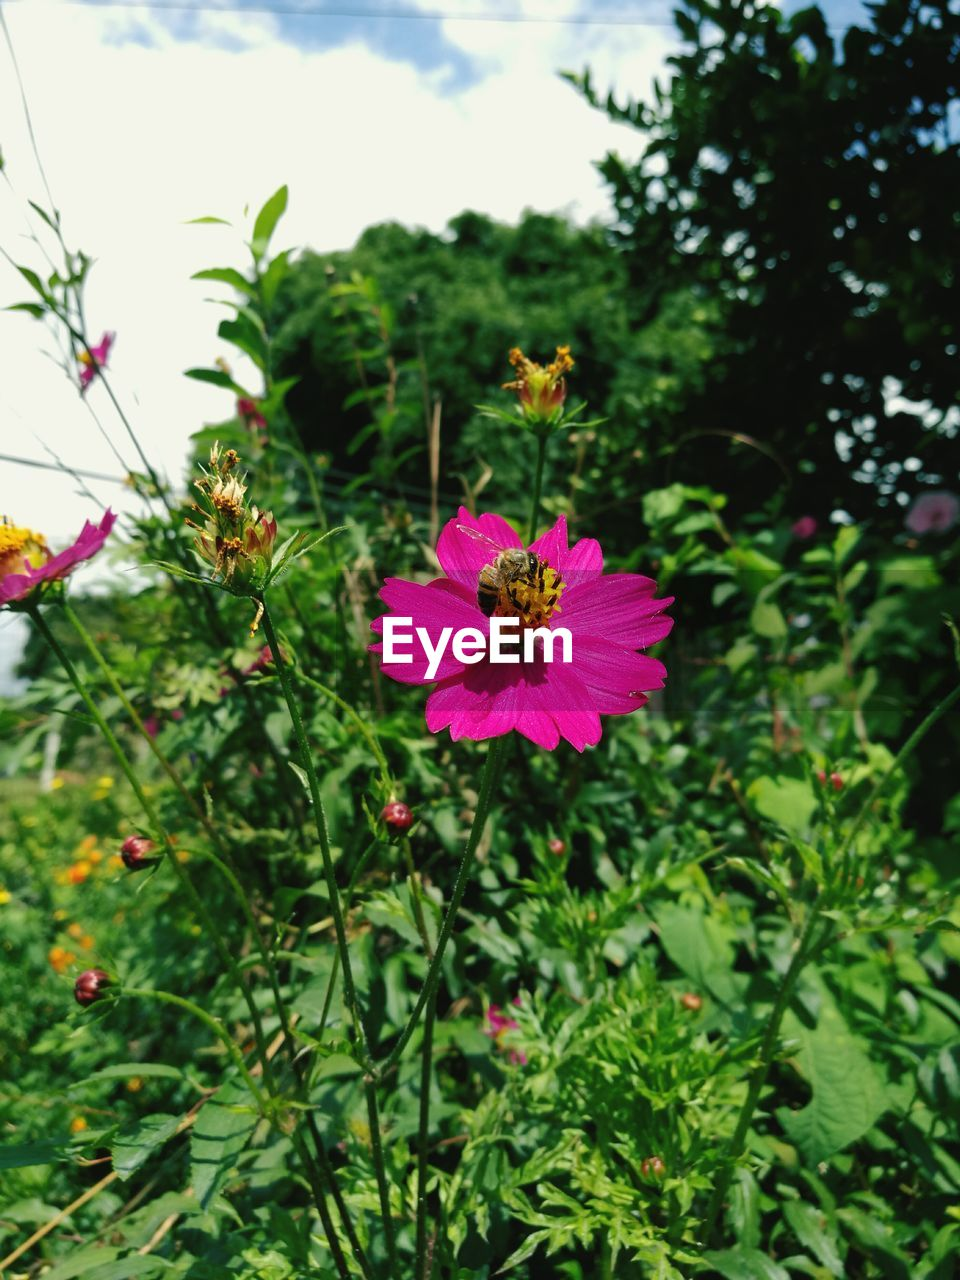 flower, growth, fragility, petal, freshness, beauty in nature, nature, plant, flower head, focus on foreground, blooming, no people, green color, day, outdoors, pink color, close-up, zinnia, animal themes